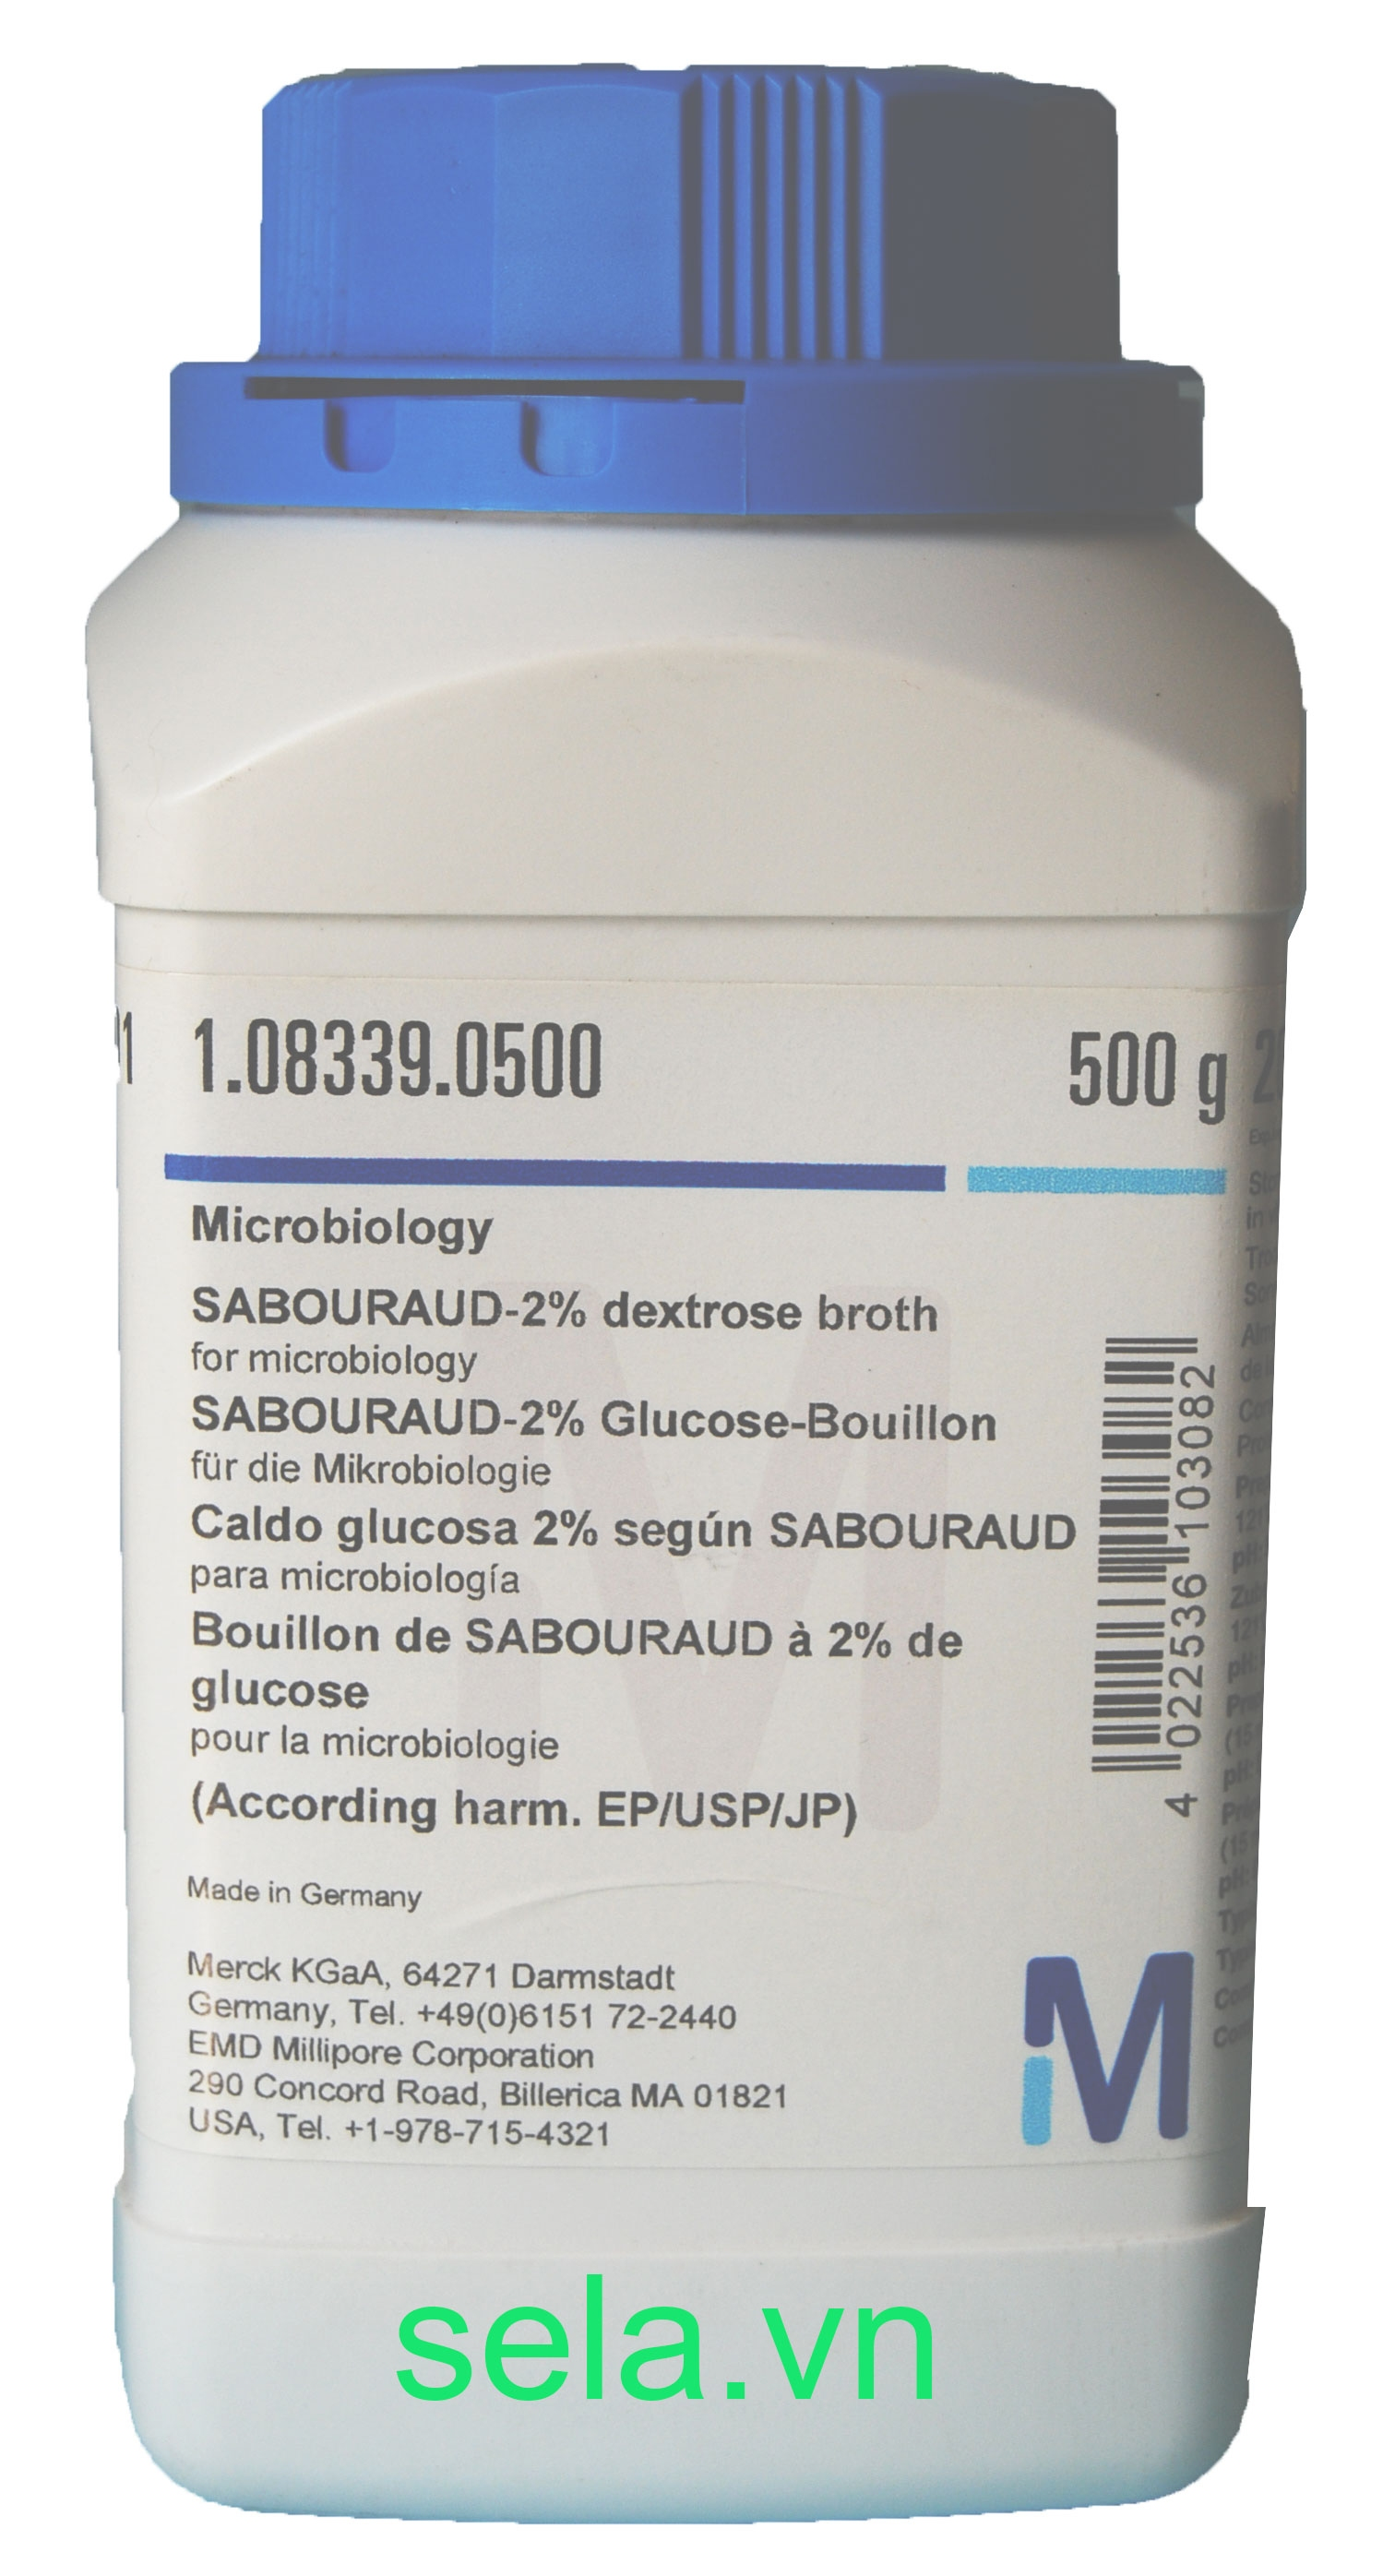 SABOURAUD-2% dextrose broth for microbiology (According harm. EP/USP/JP)